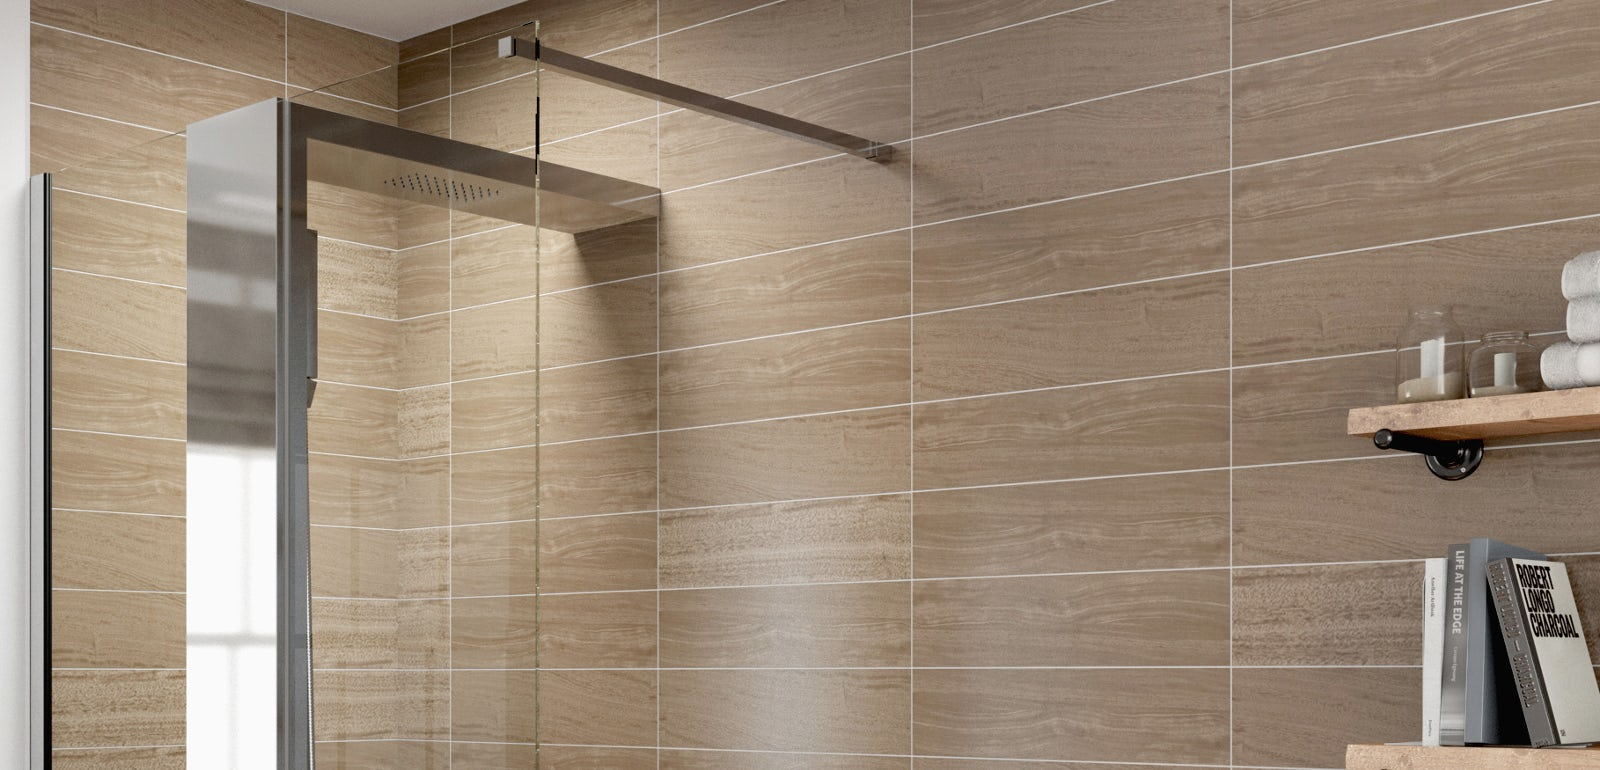 Alternative To Tiles In Shower Cubicle Showerwall Fitted All On One - Alternative to tiles in shower cubicle